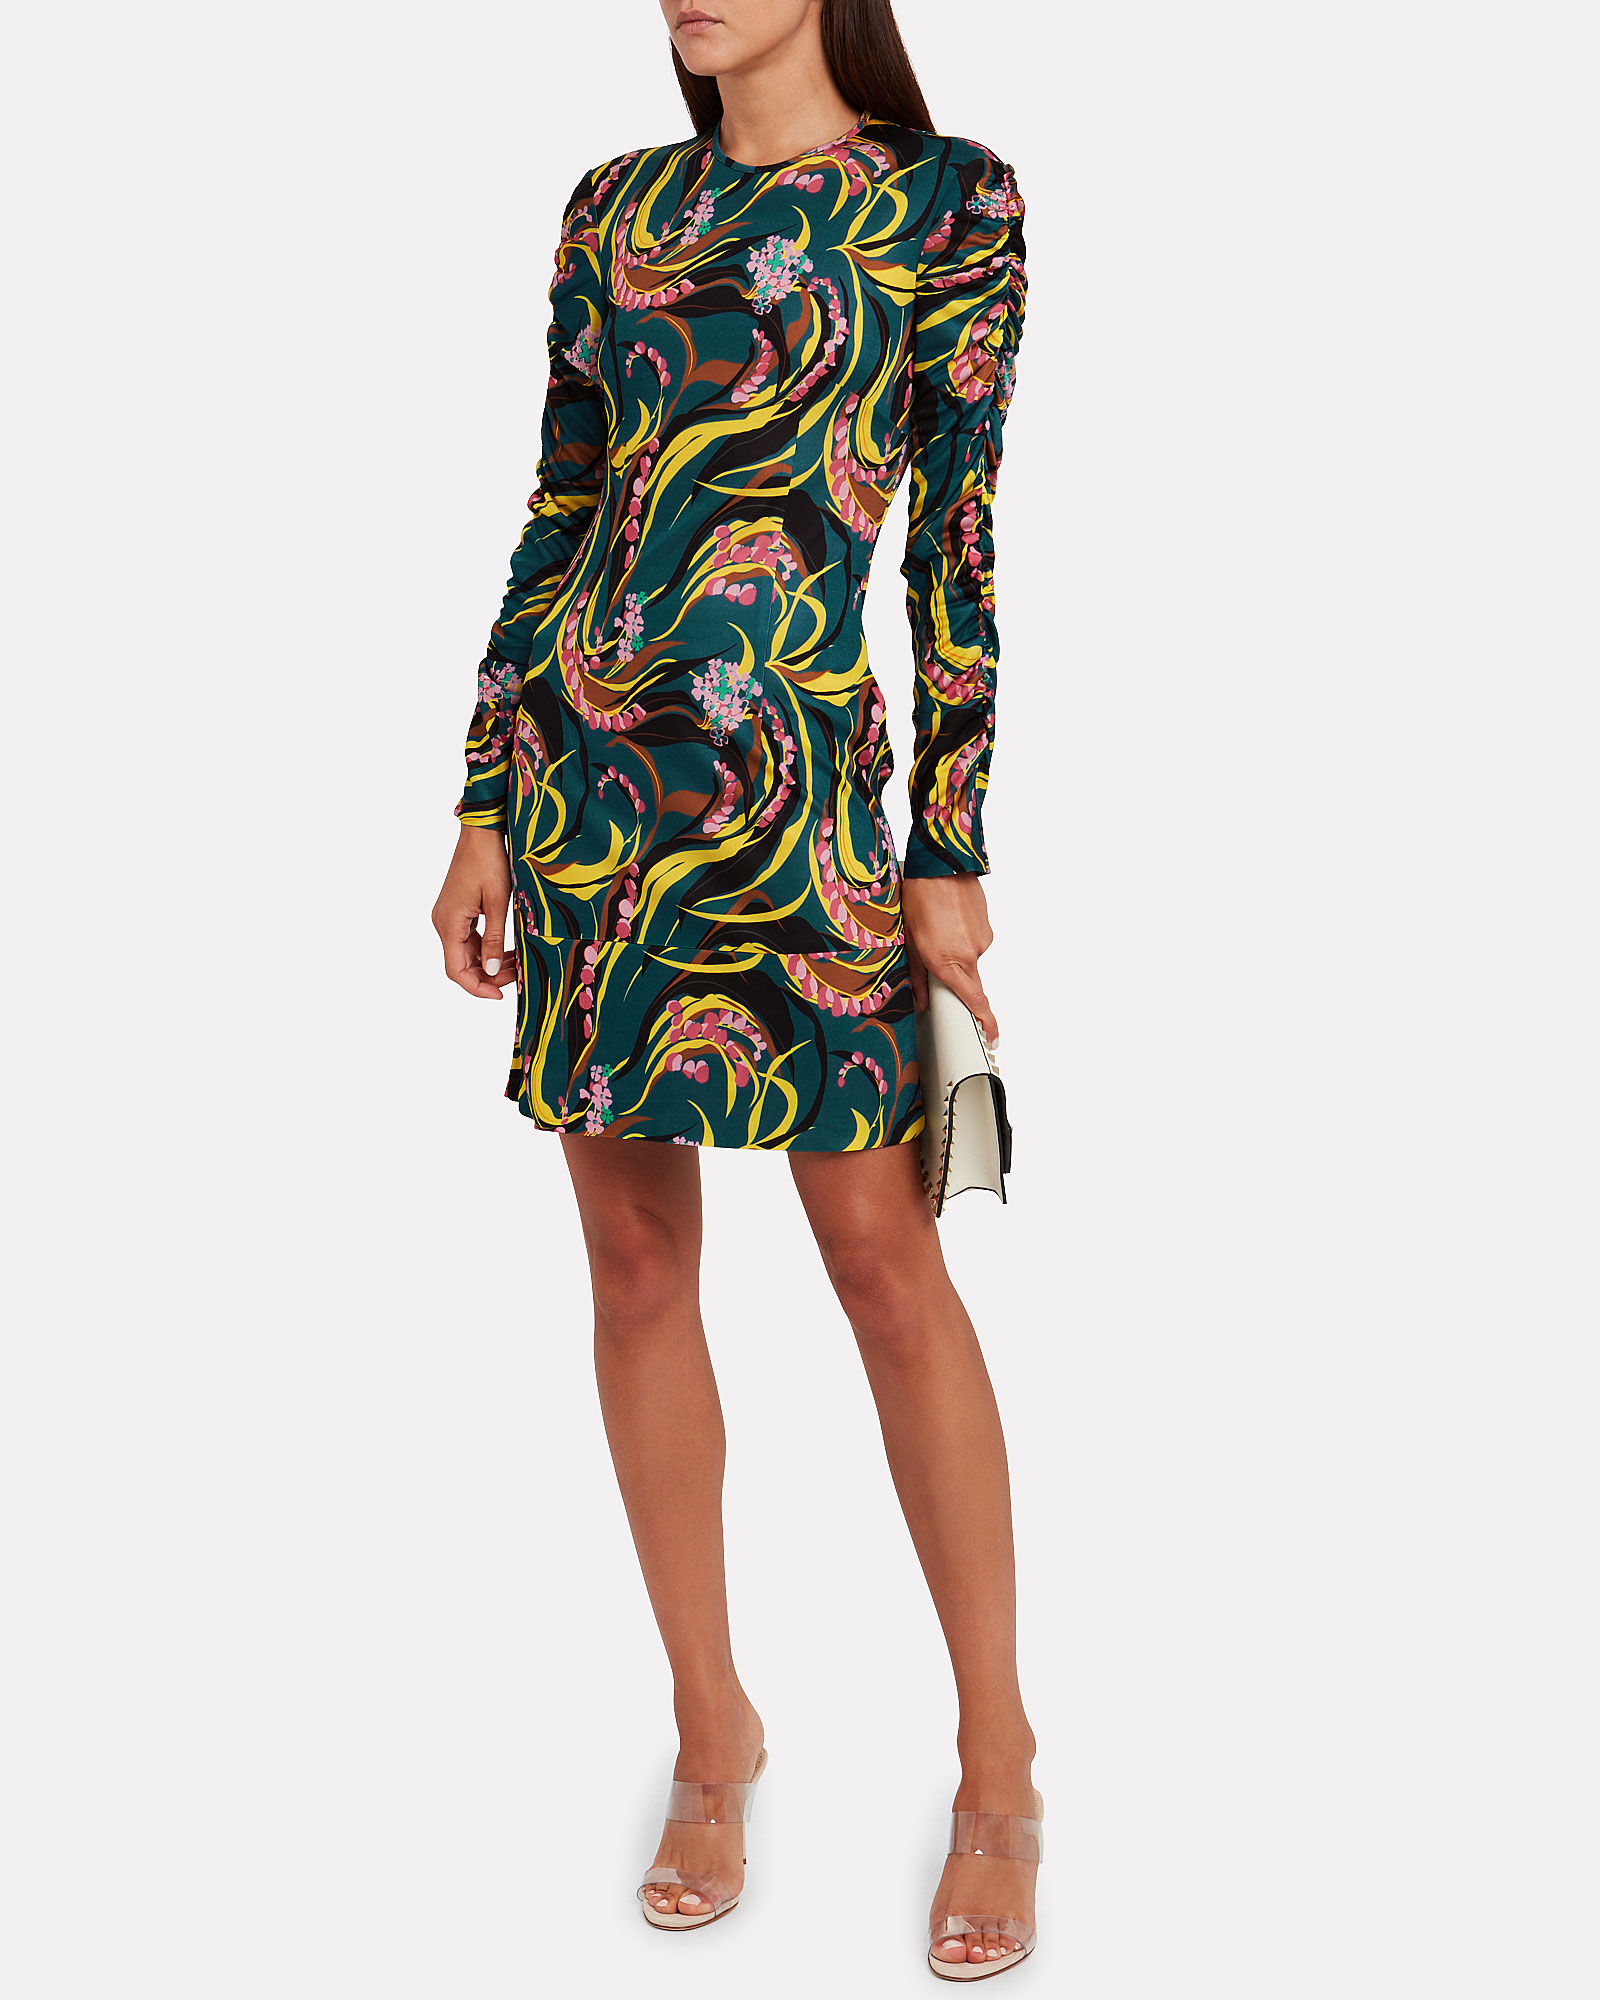 Tinder Windy Floral Mini Dress, MULTI, hi-res